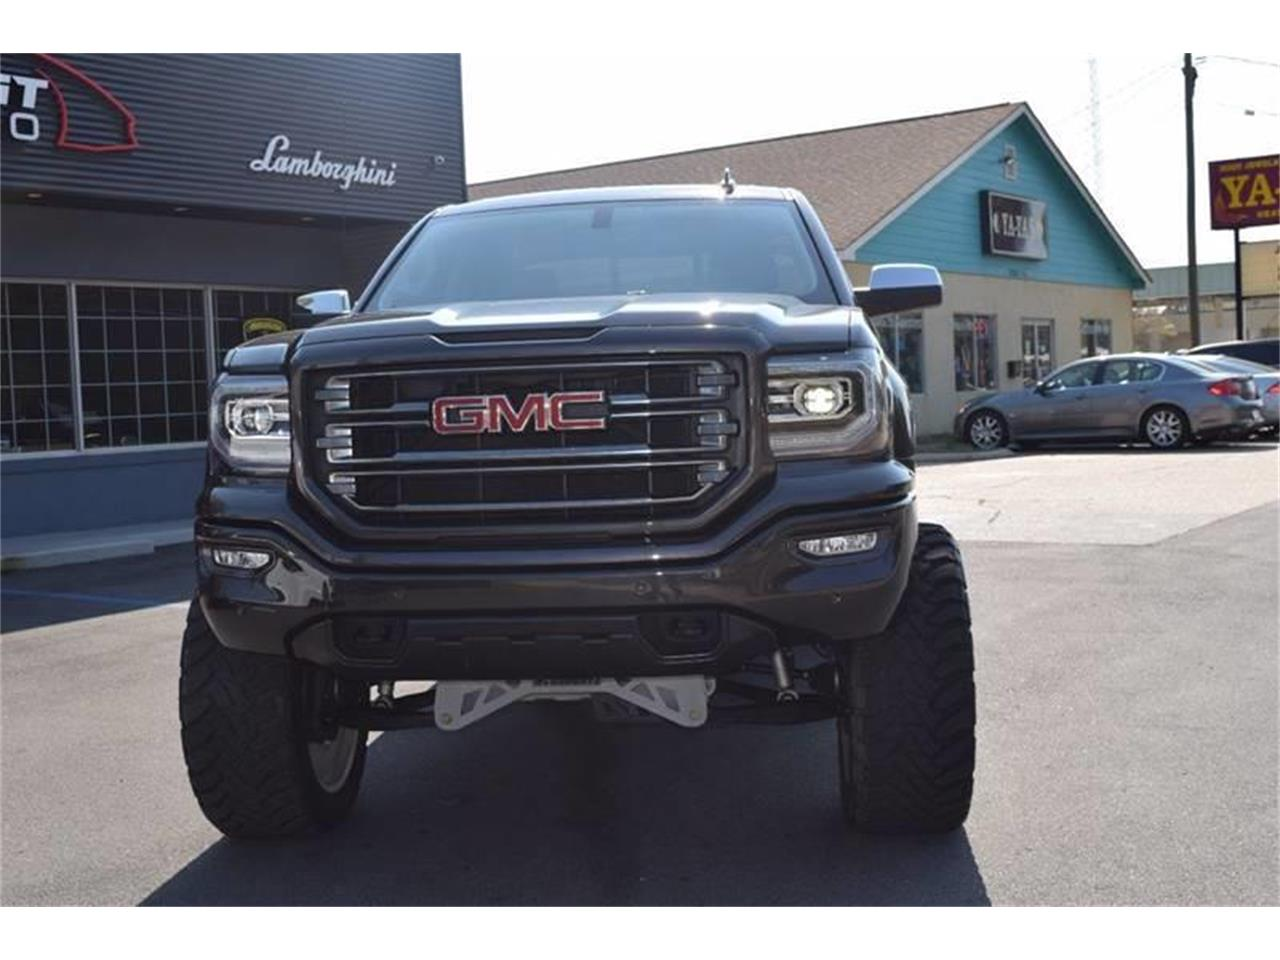 Large Picture of 2016 GMC Sierra located in Biloxi Mississippi - $45,900.00 - LHZQ